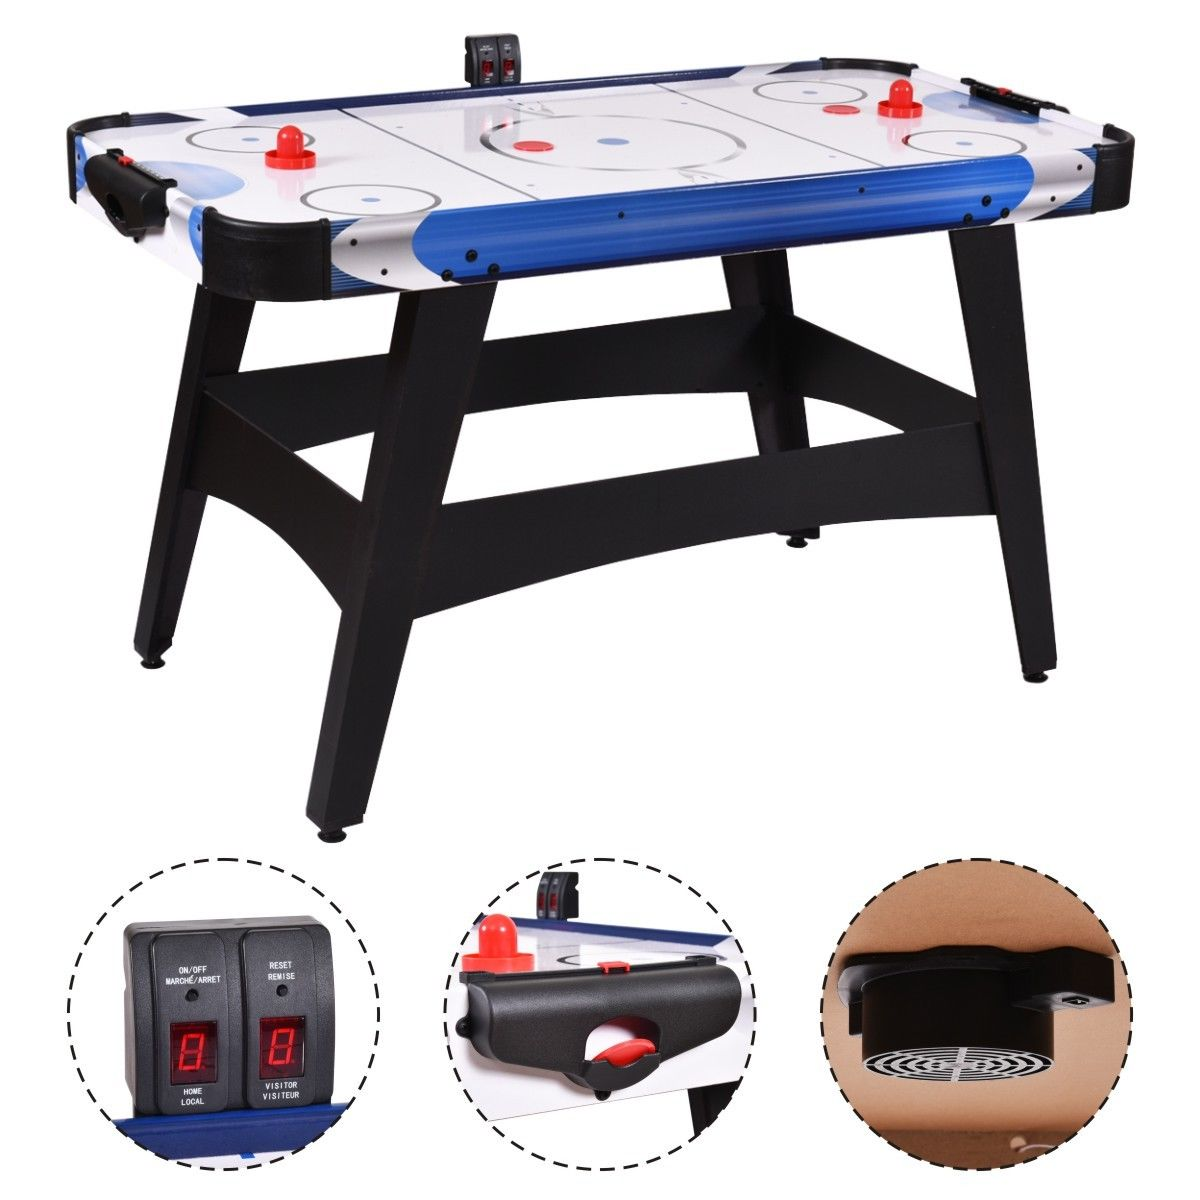 Costway 54'' Air Powered Hockey Table Indoor Sports Game Room Electronic Scoring For Kids